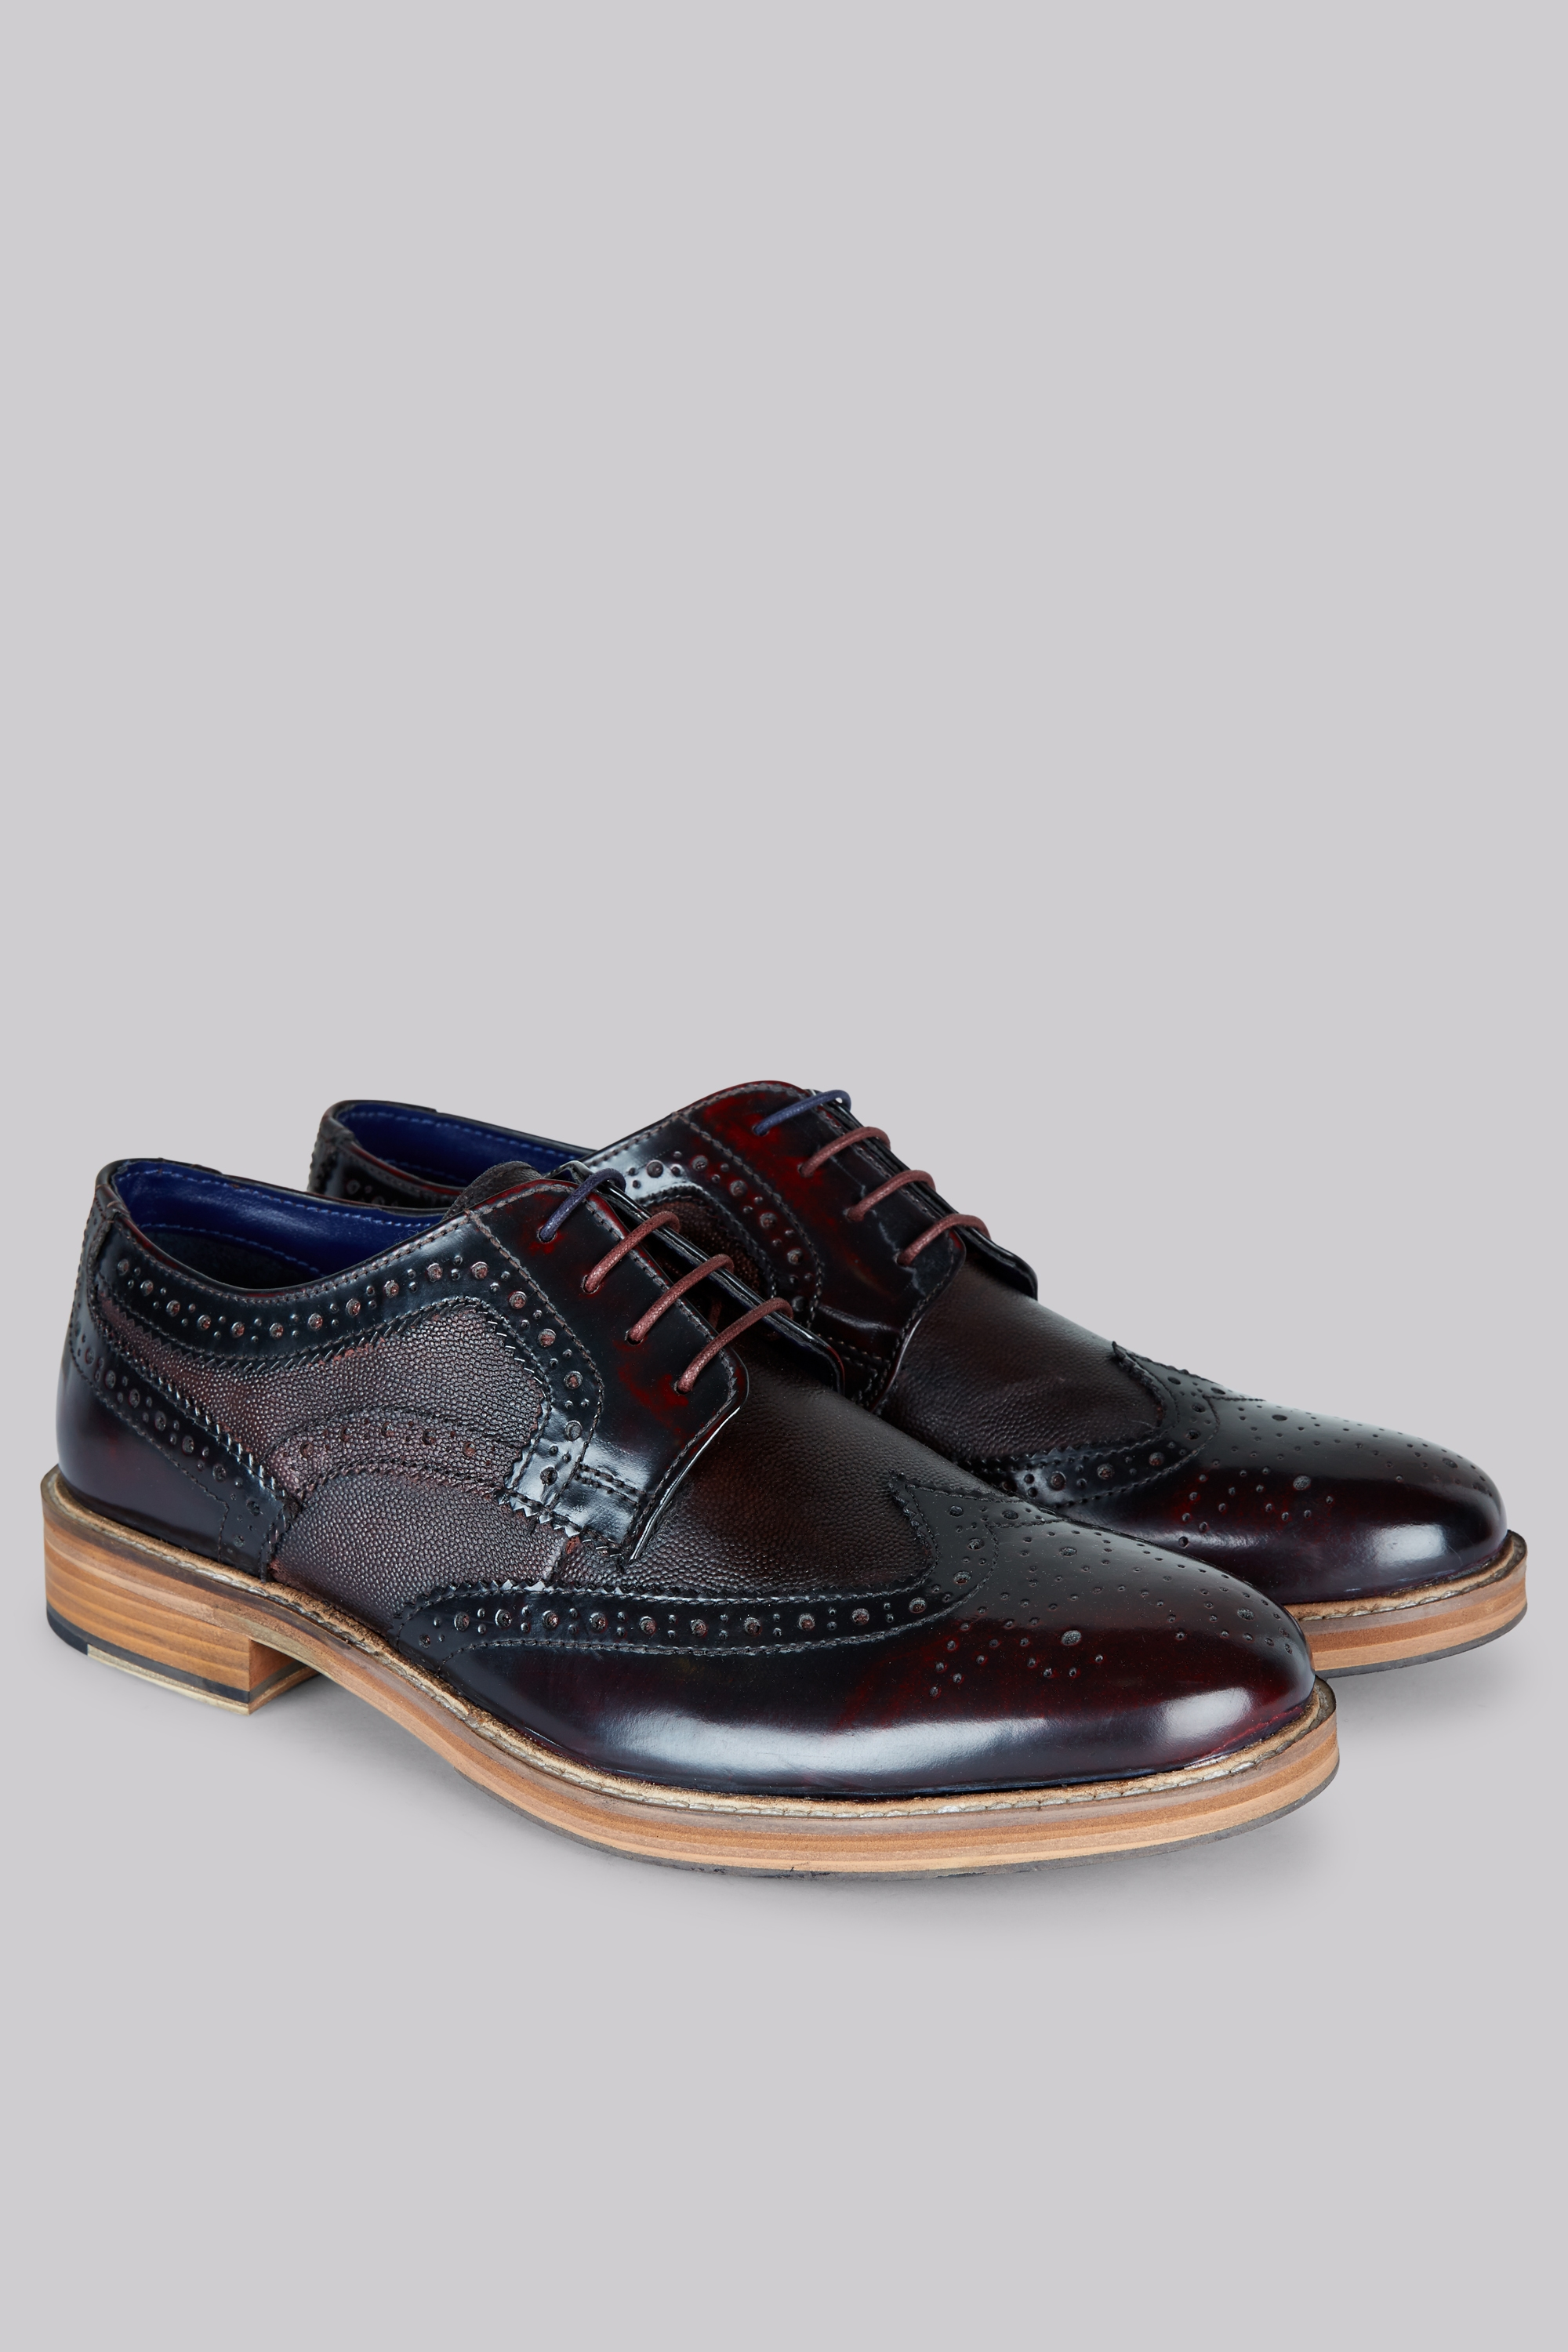 moss mens formal shoes oxblood fairfield